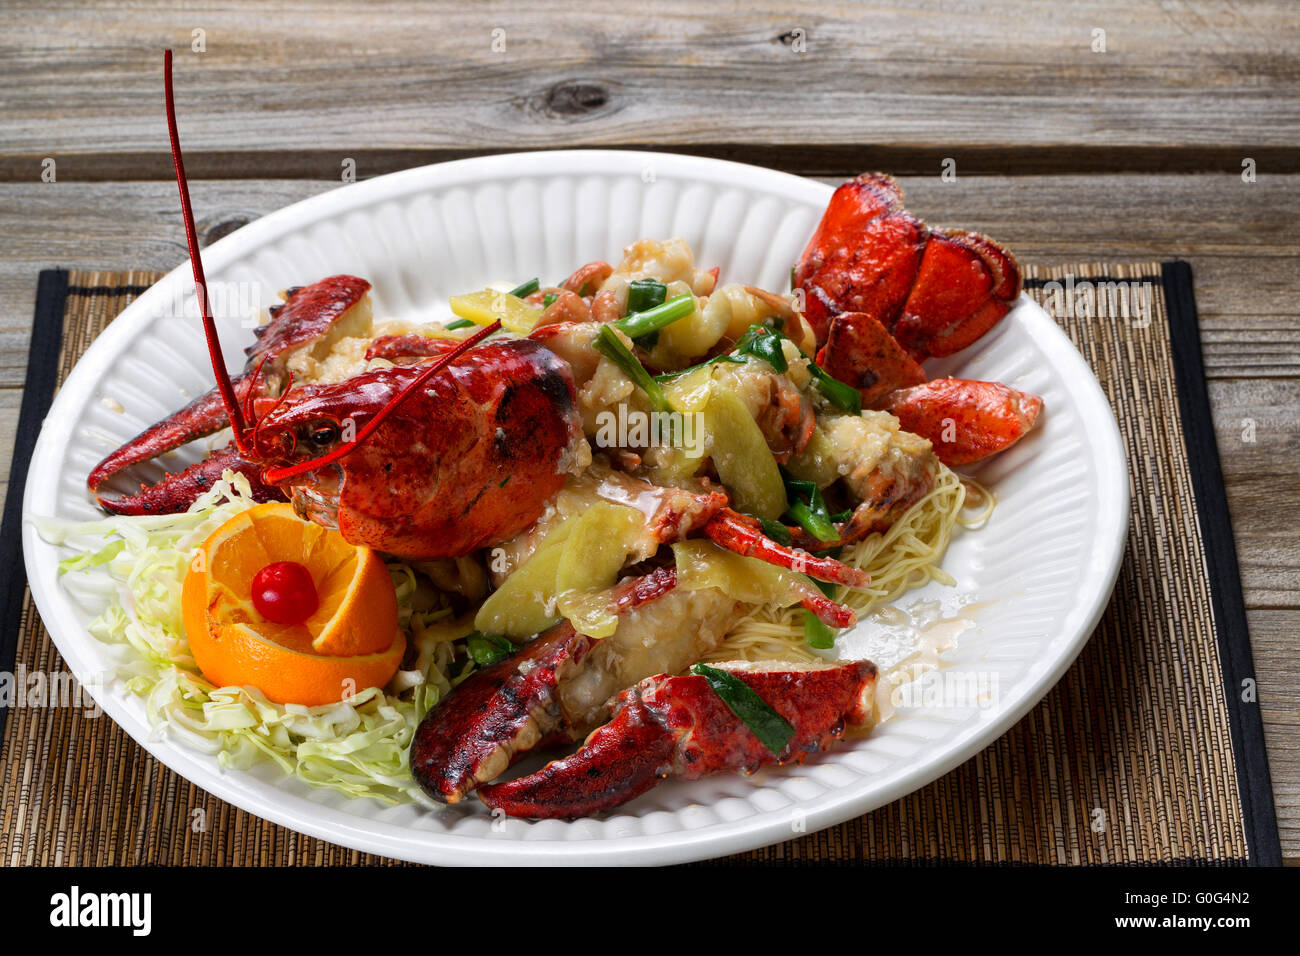 Steamed whole Maine lobster and garnishes on white serving plate ready to eat - Stock Image